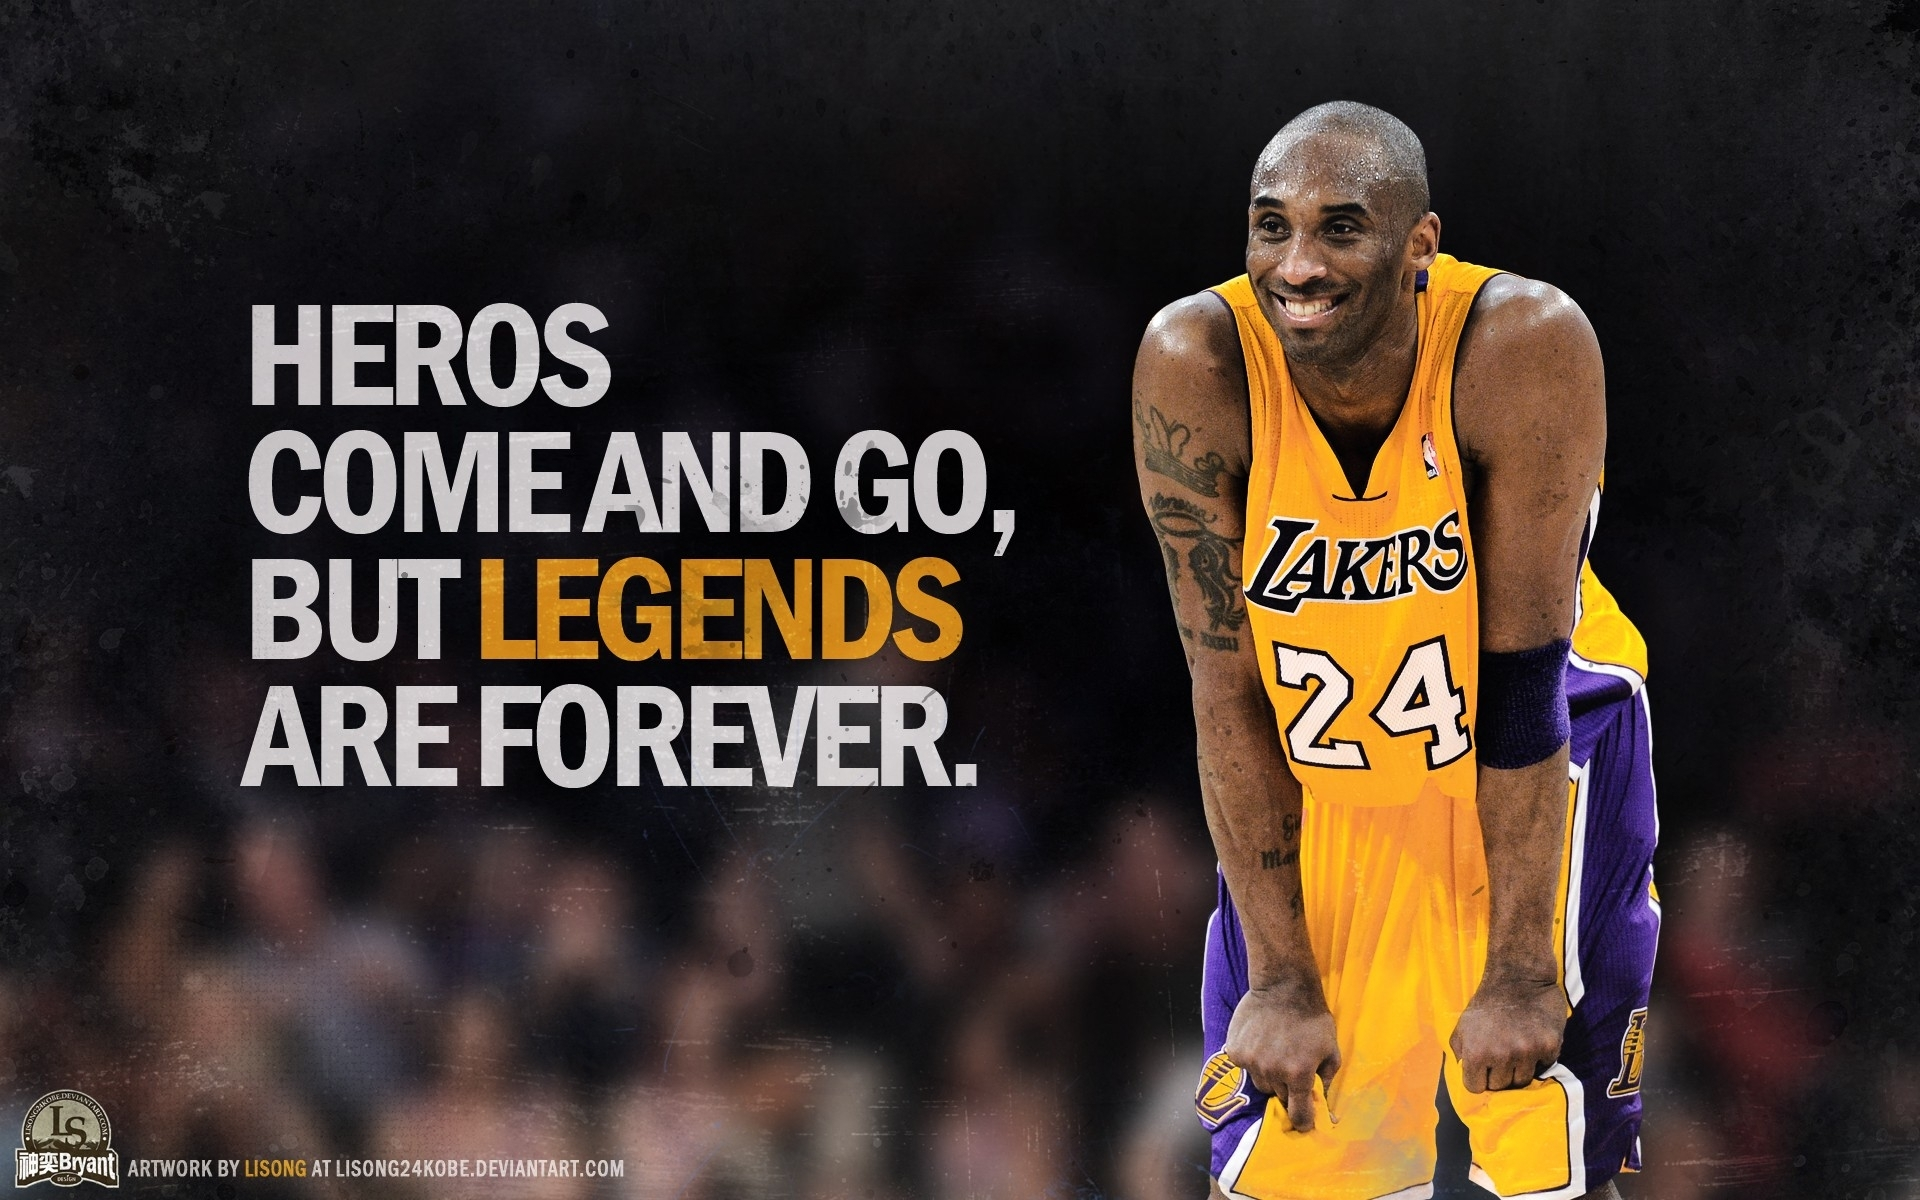 Title Download Kobe Bryant Wallpapers Hd 2015 Wallpaper Cave Dimension 1920 X 1200 File Type JPG JPEG